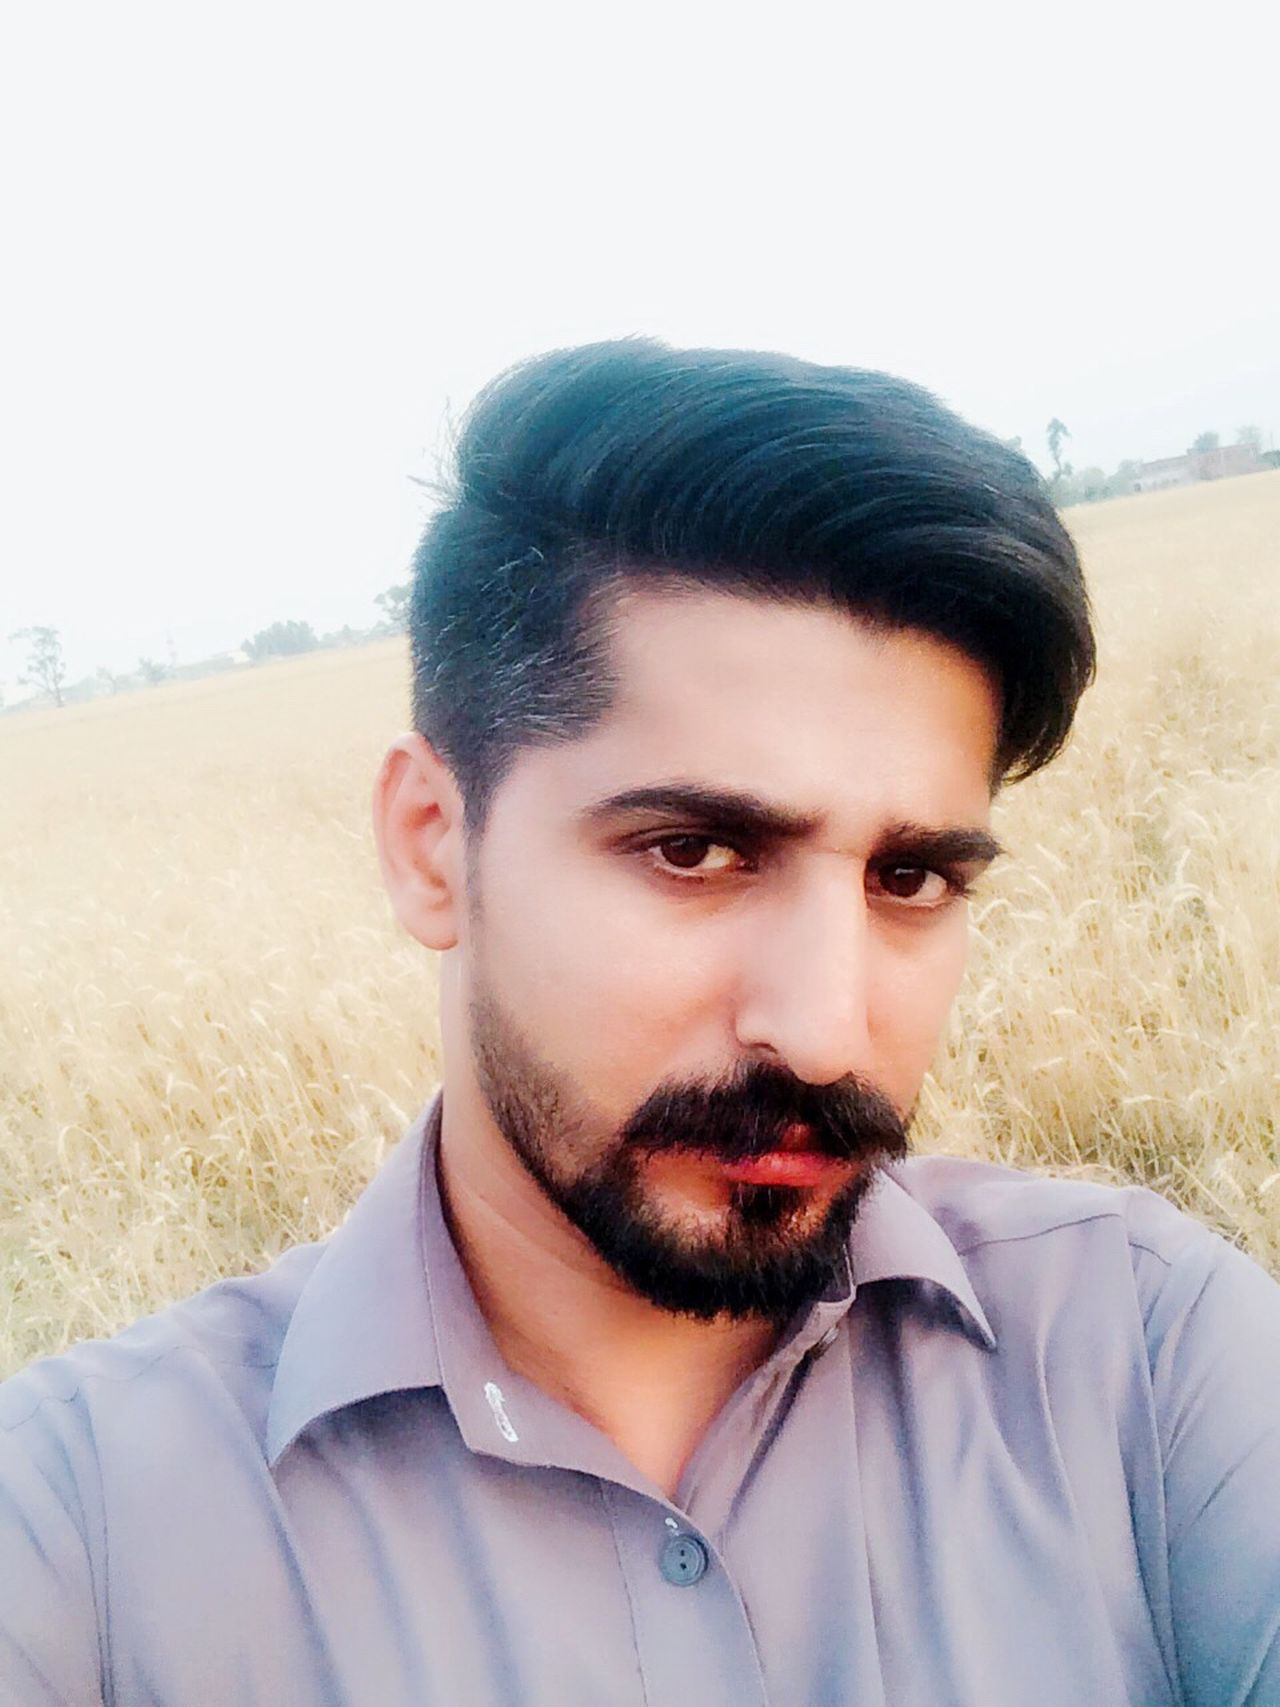 Looking At Camera Hi! My City Dhaunkal Beautiful Pakistan Asian  First Eyeem Photo Selfie ✌ Today's Hot Look With Friends That's Me Smiling Hello World Enjoying Life